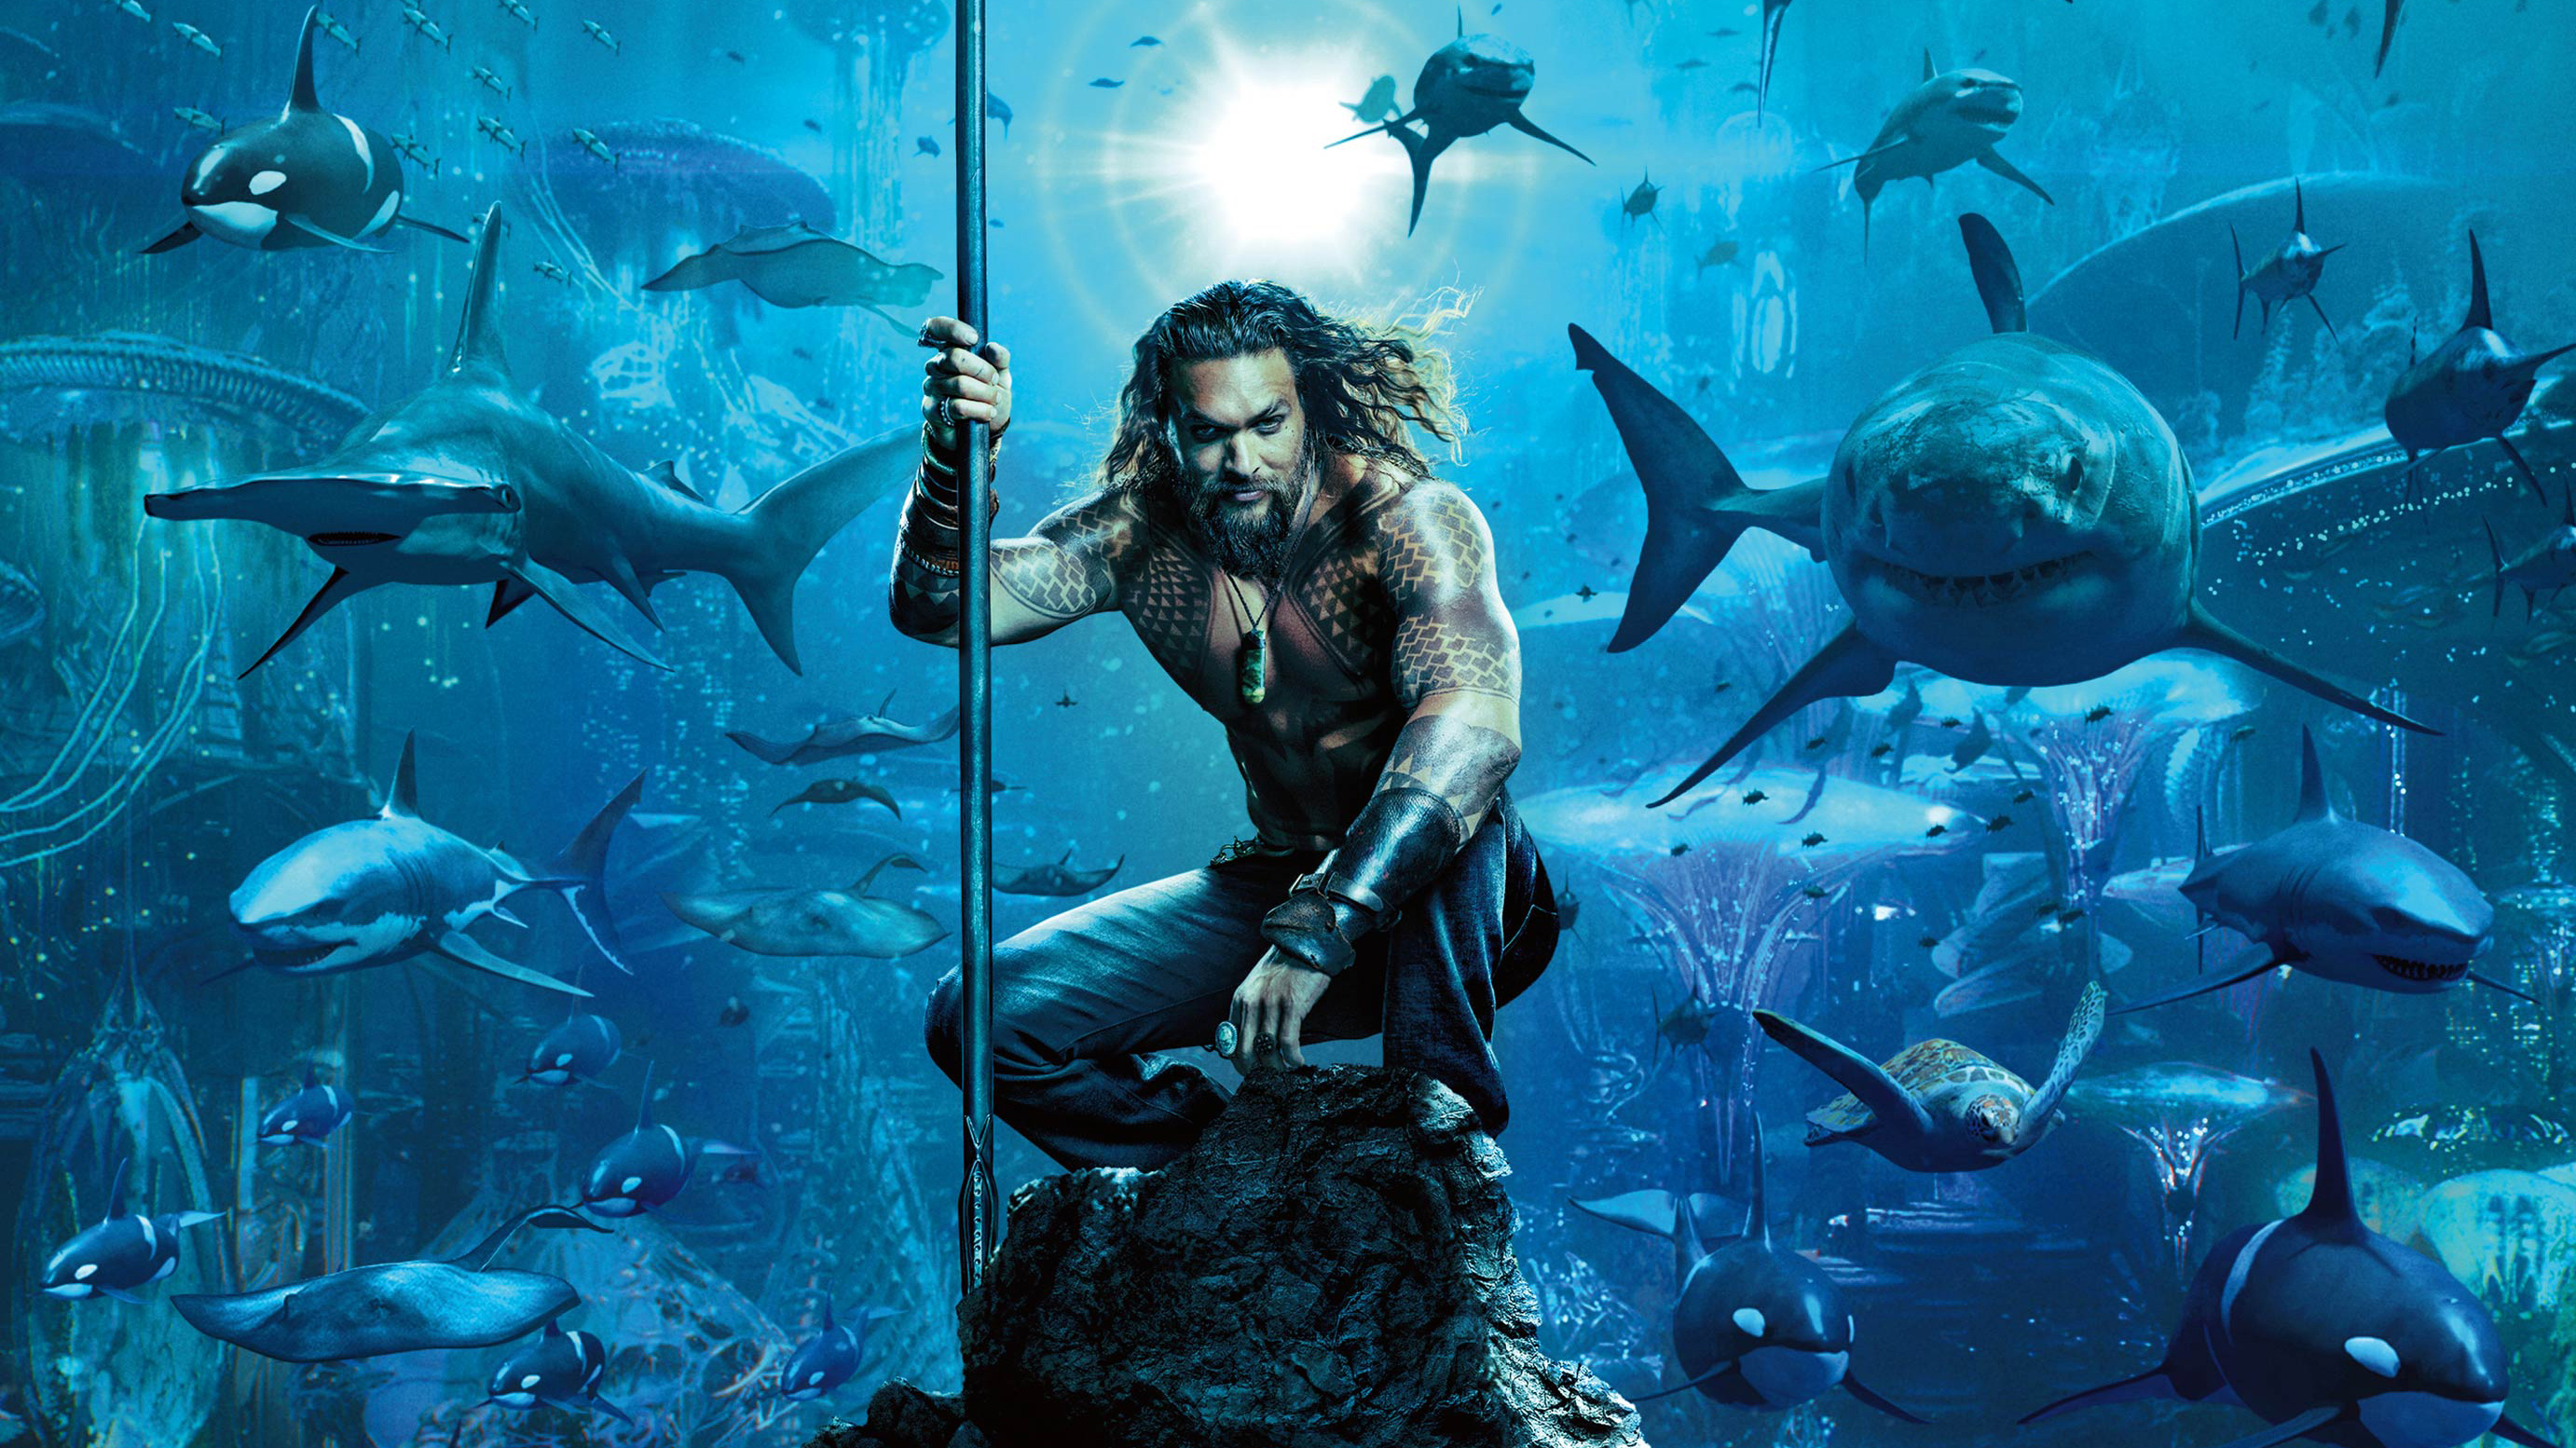 2018 Movie Posters: Aquaman Movie Poster 2018, HD Movies, 4k Wallpapers